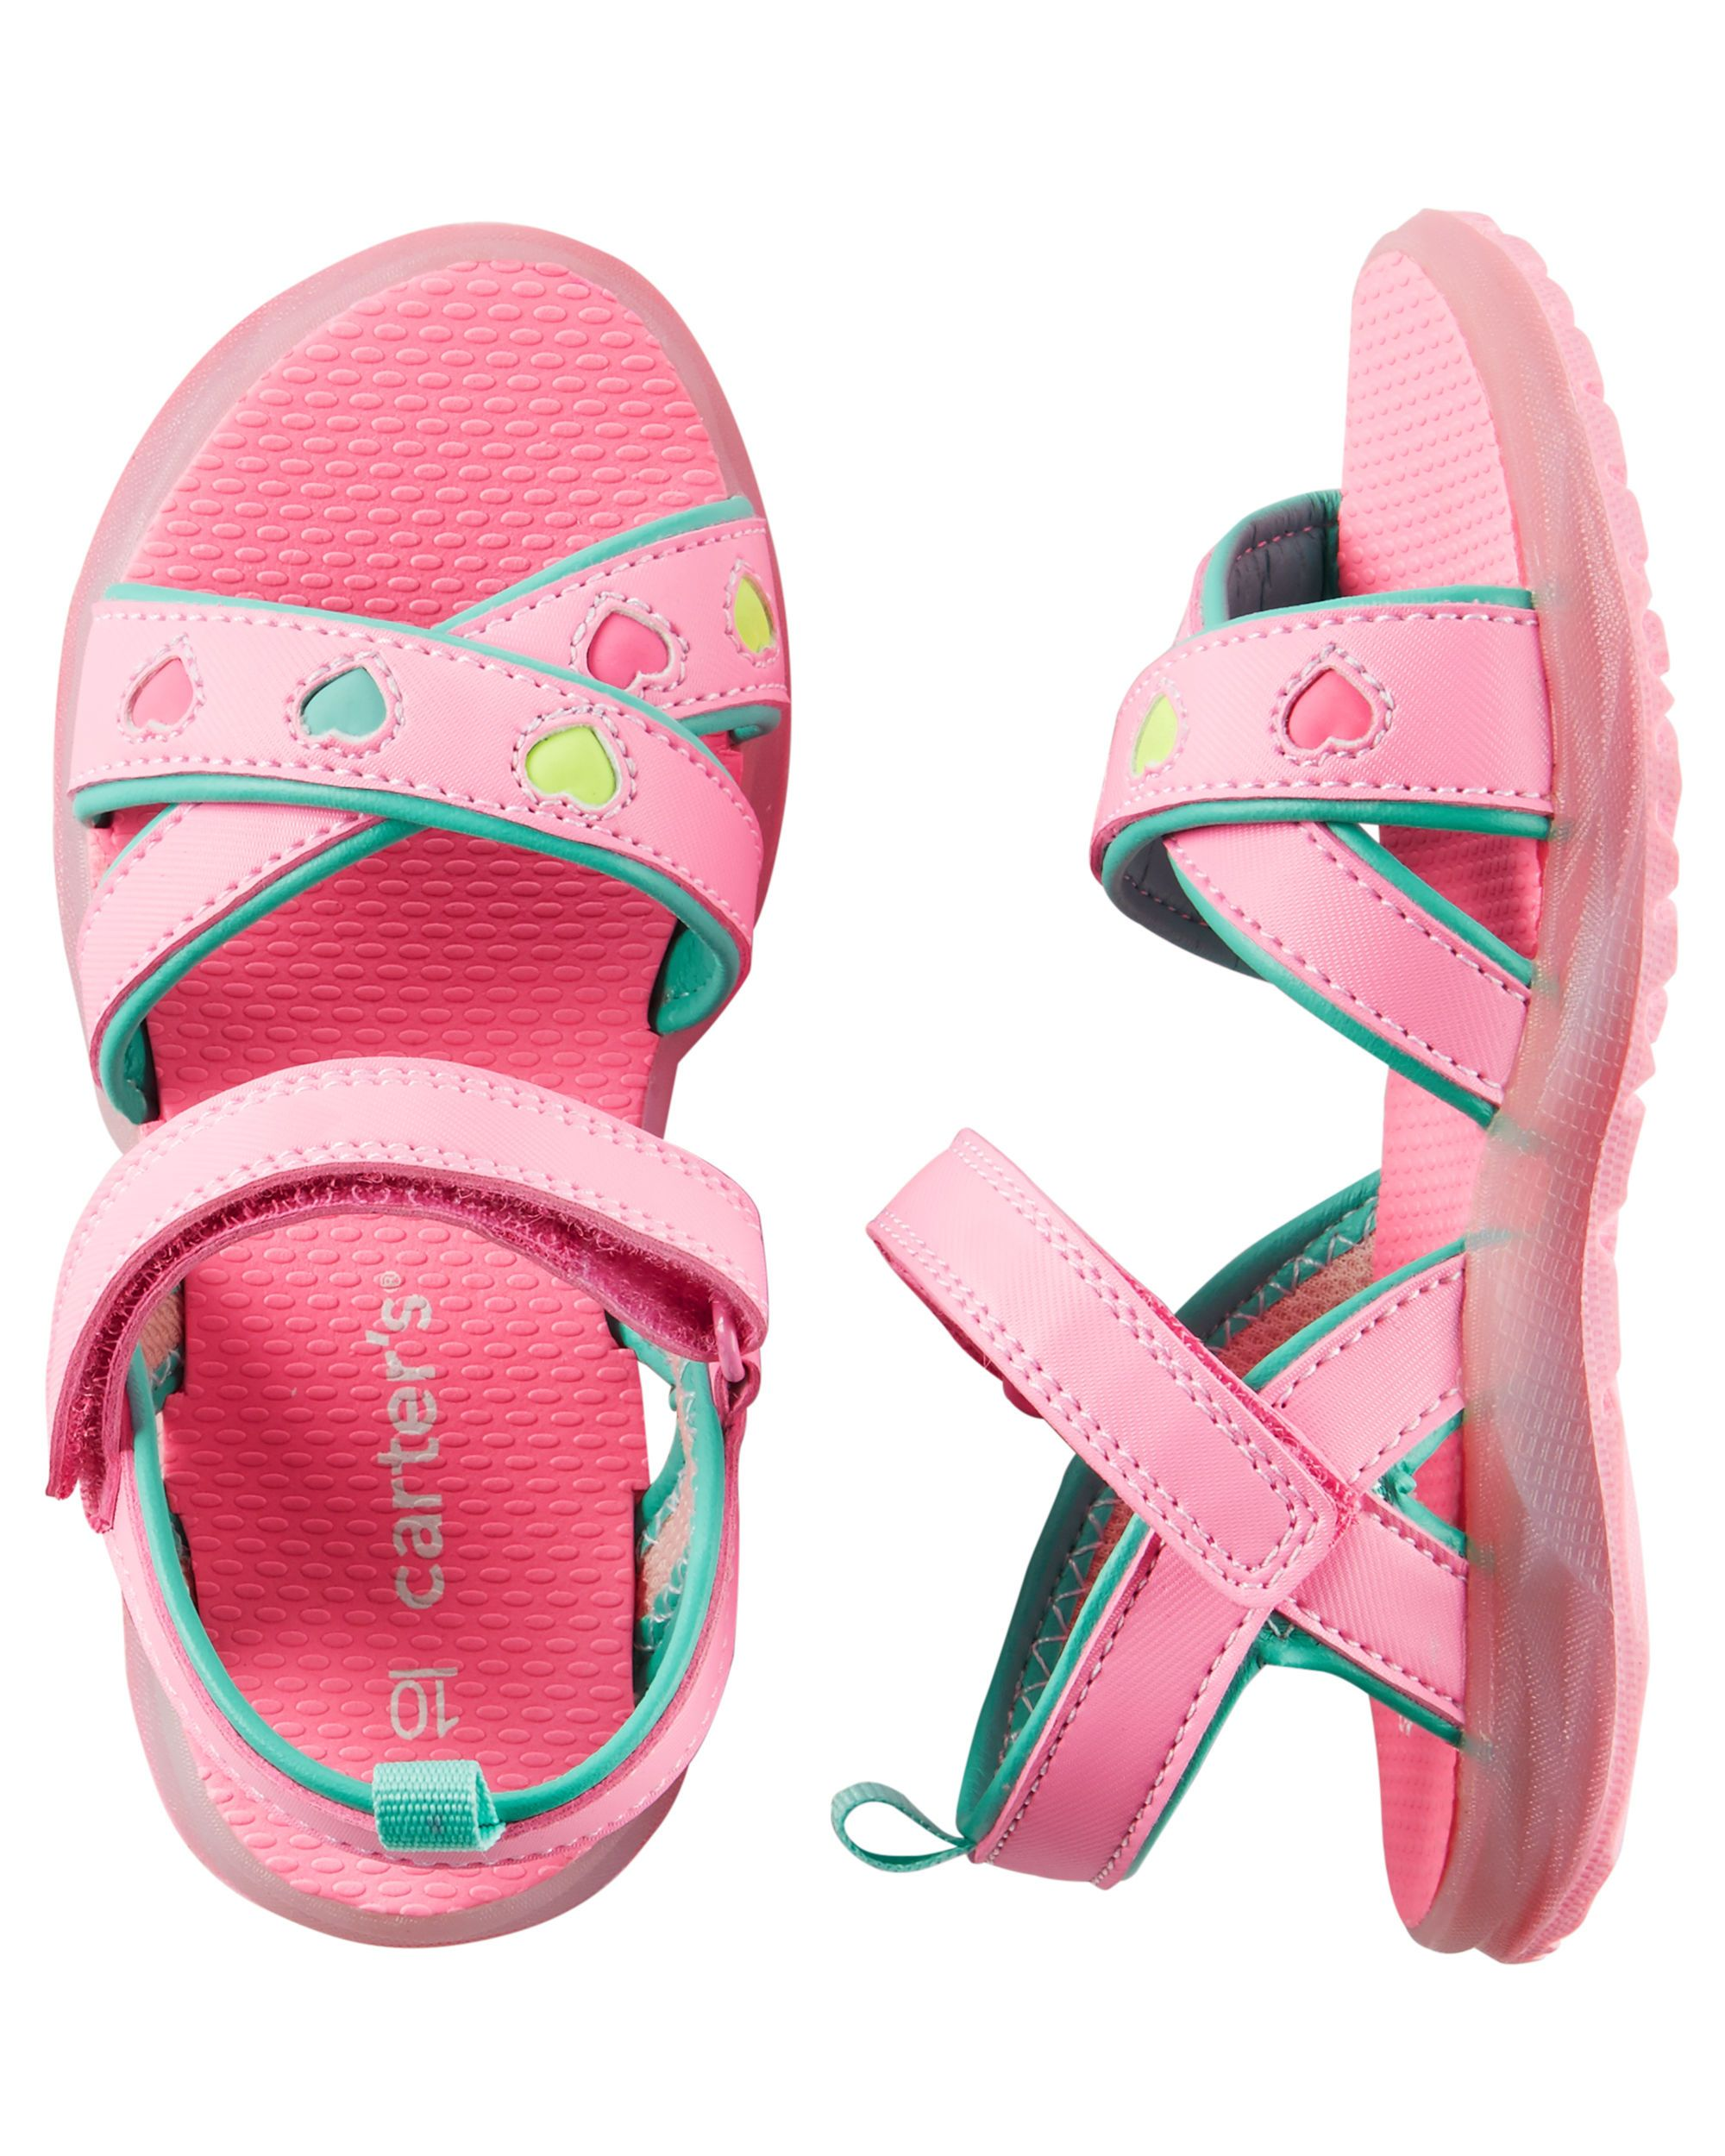 Girls Shoes, Carters Baby Girl